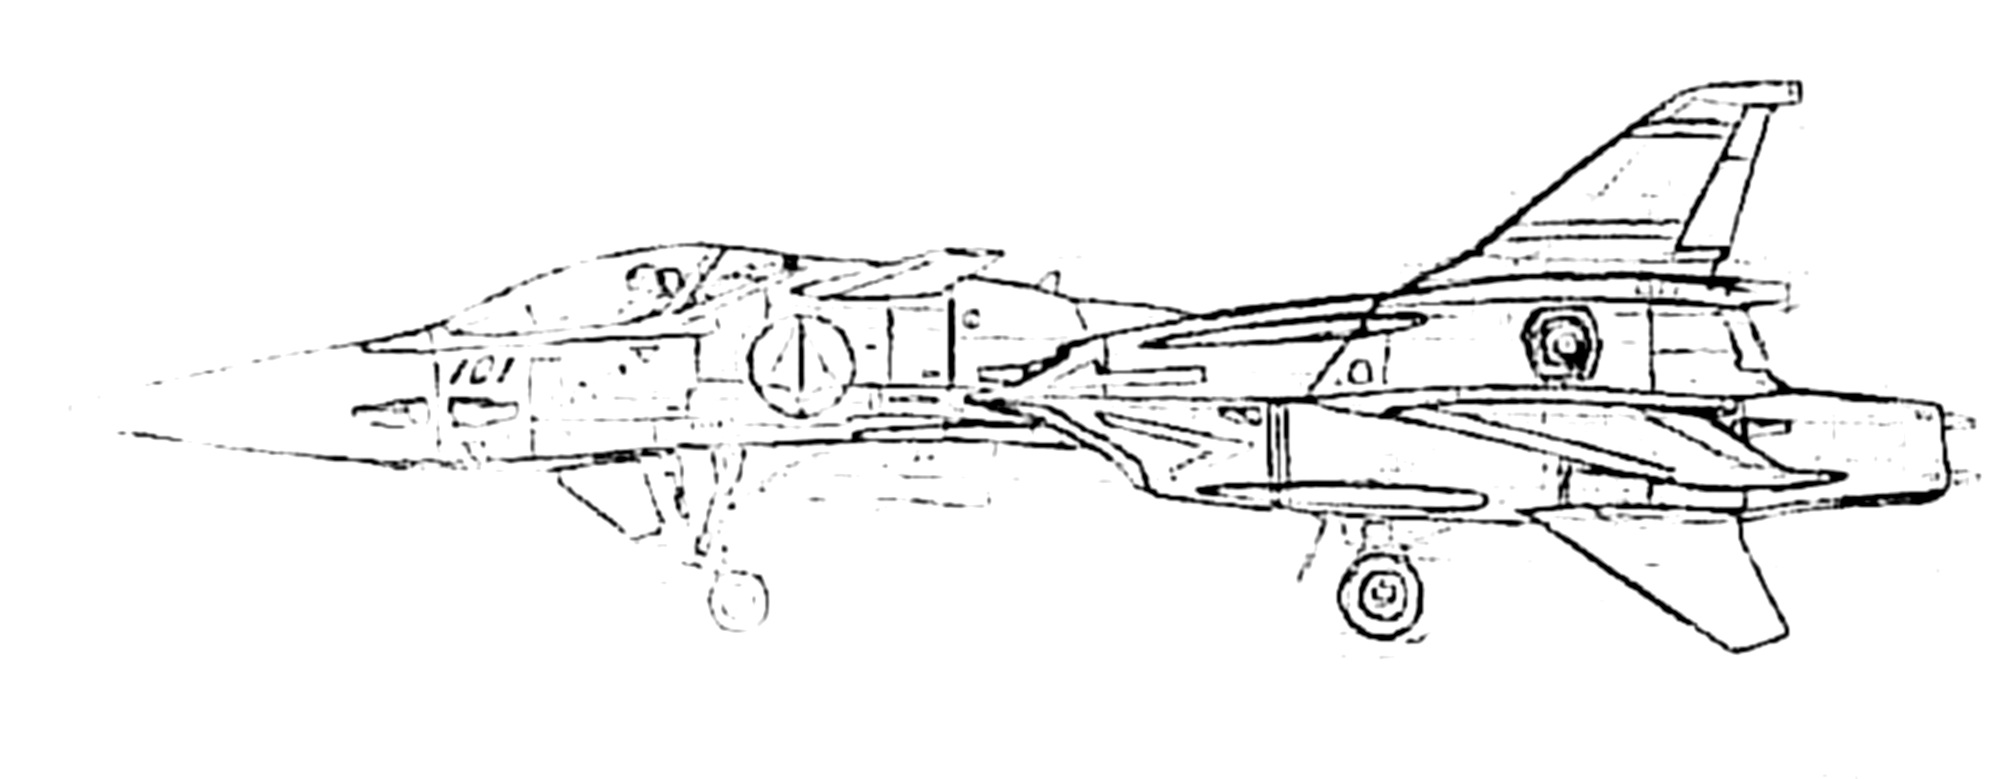 VF-4G Lightning Veritech Fleet Defense Fighter 8